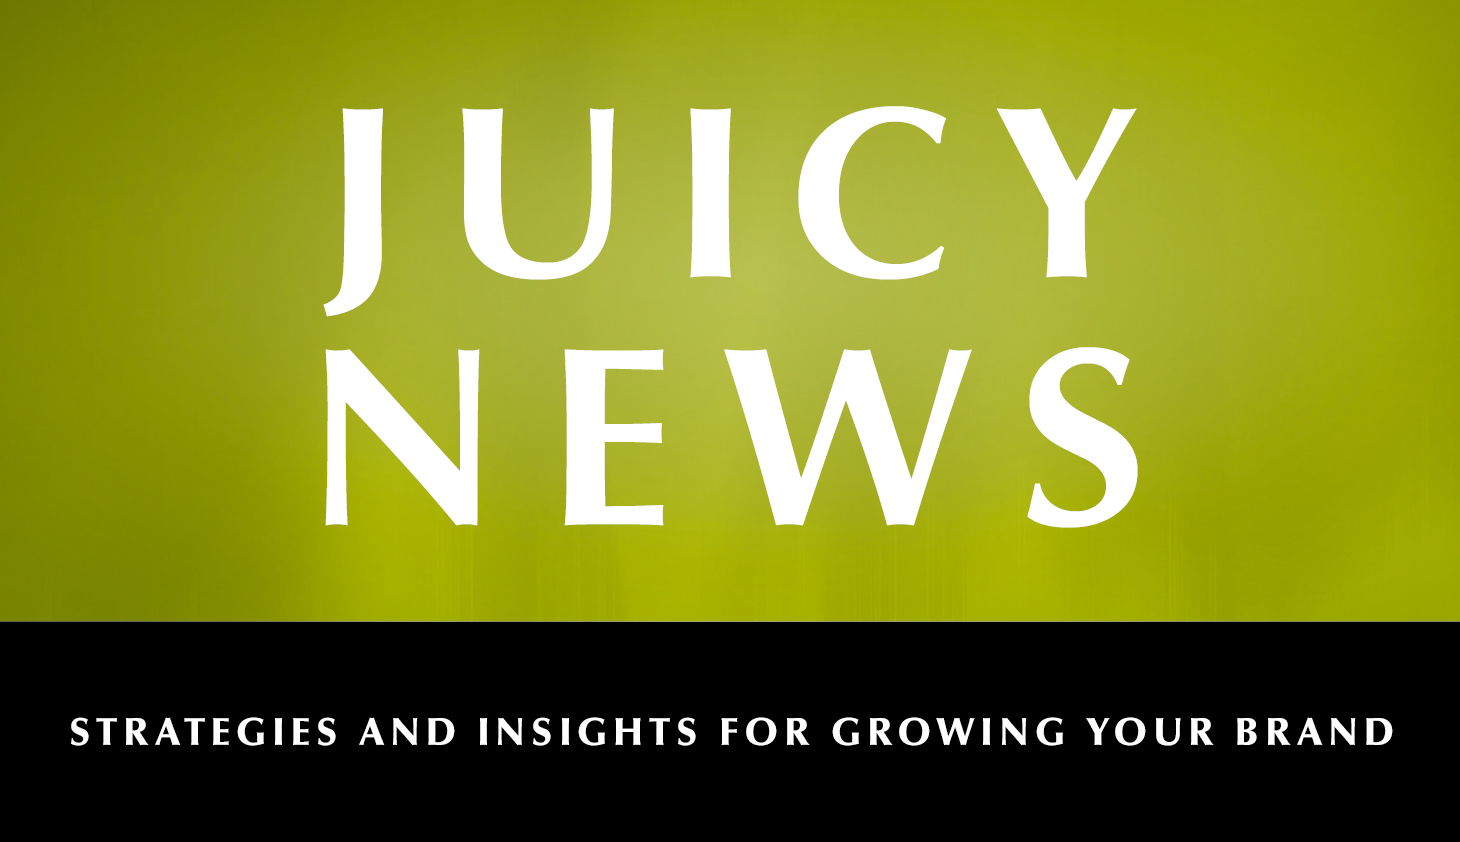 Marketing newsletter - Juicy News